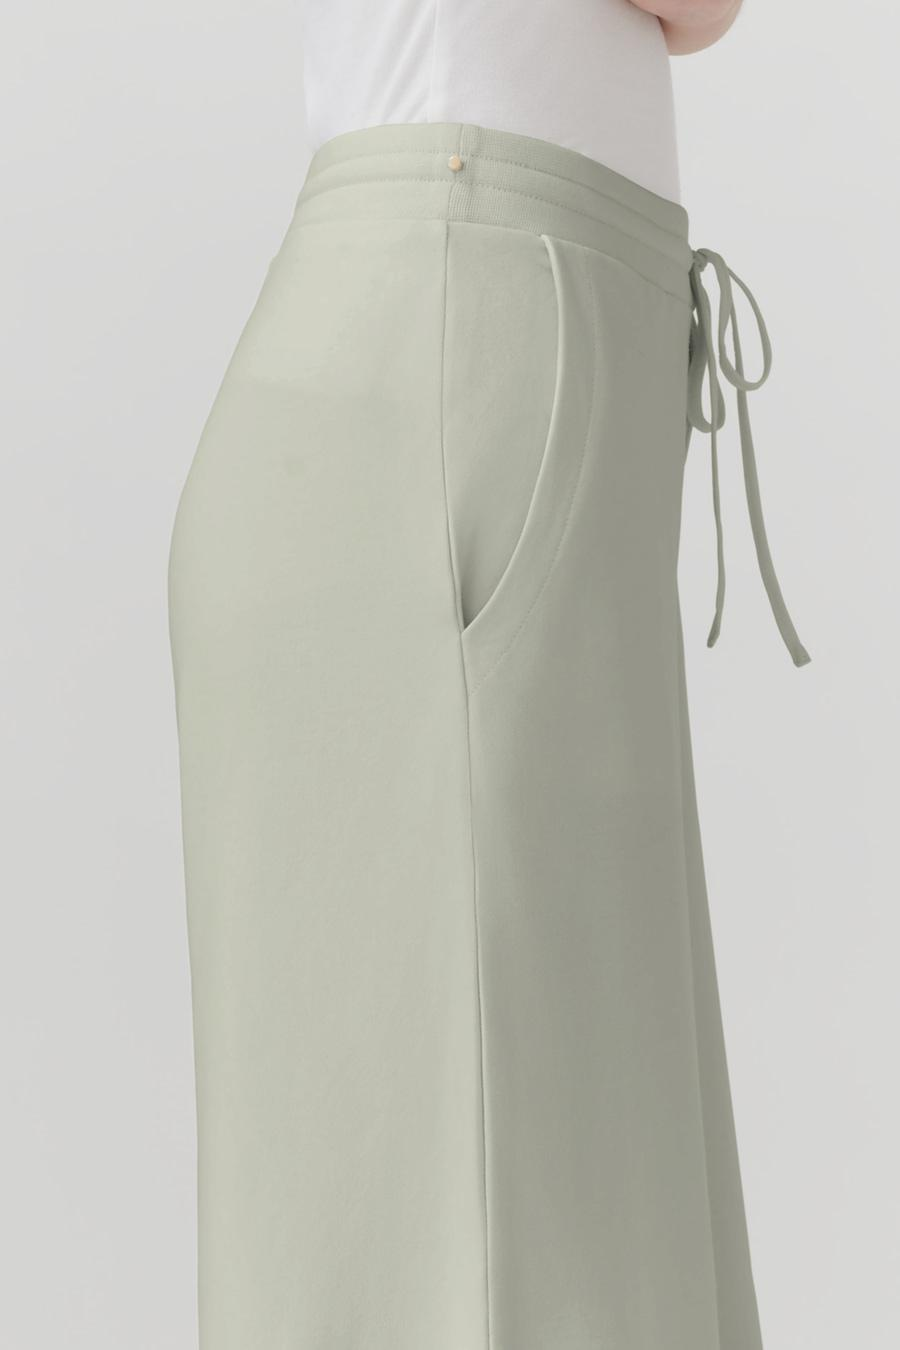 Women's French Terry Wide-Leg Cropped Pant in Sage | Size: 3